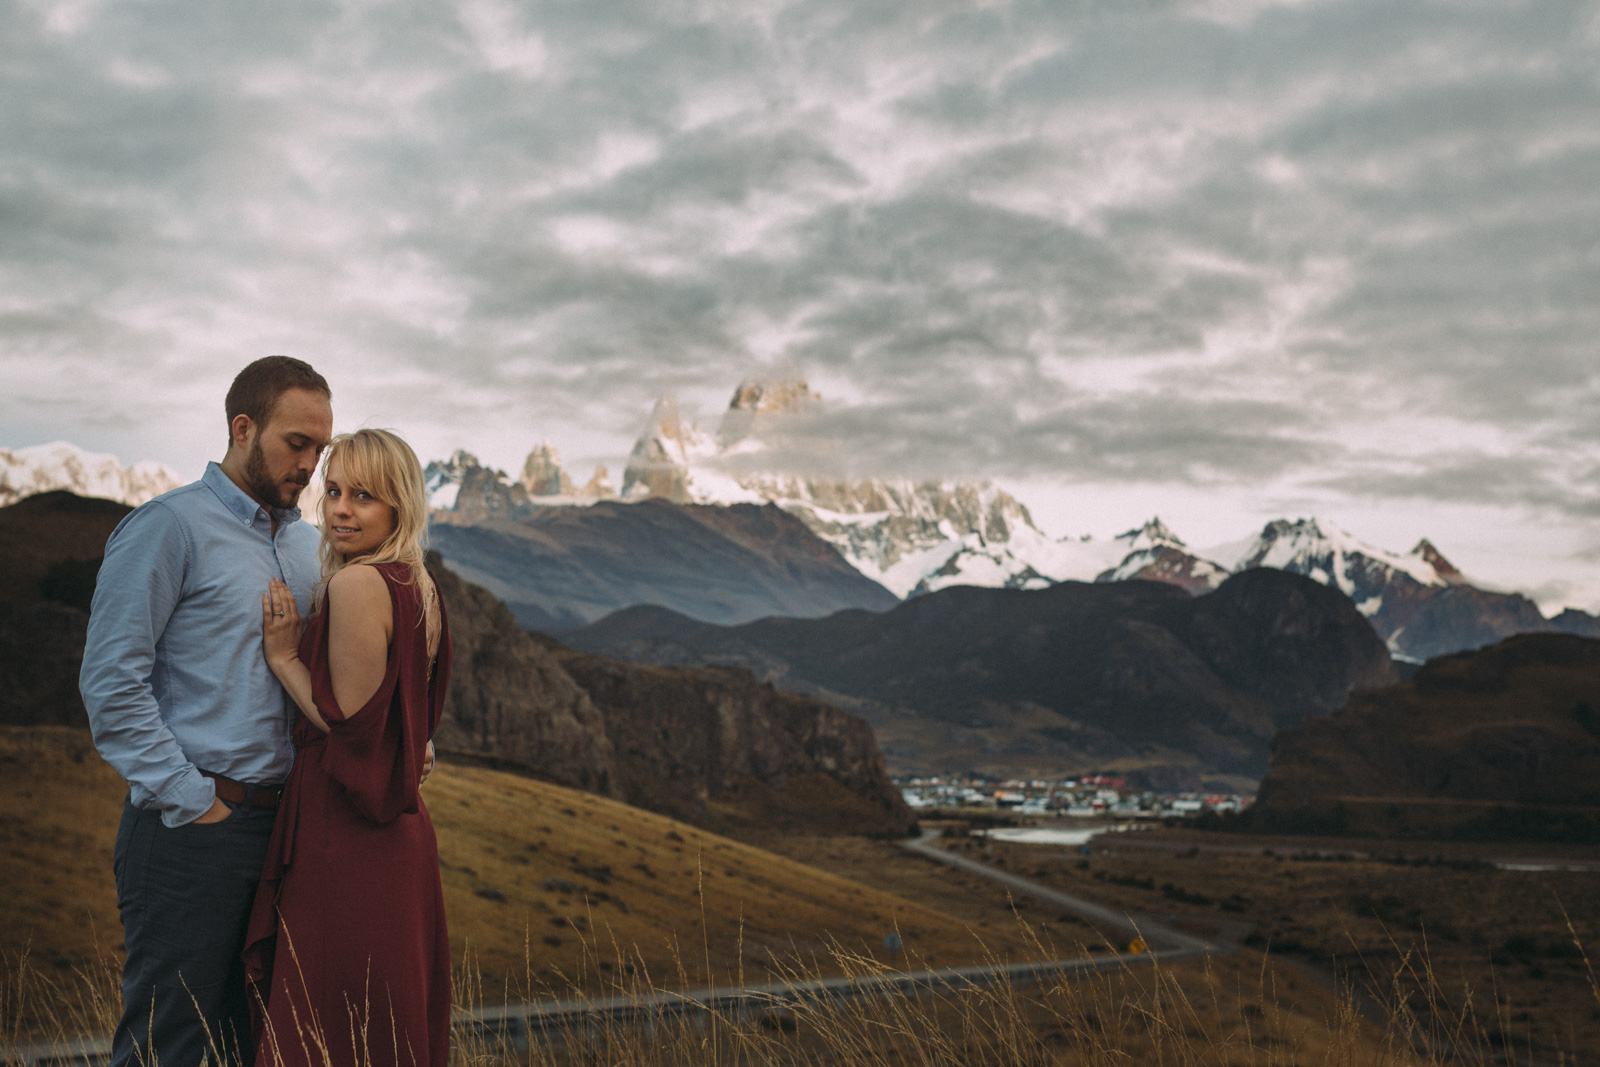 Patagonia-engagement-photography-in-El-Chalten-Argentina-by-lifestyle-photographer-Sam-Wong-of-Artanis-Collective_16.jpg